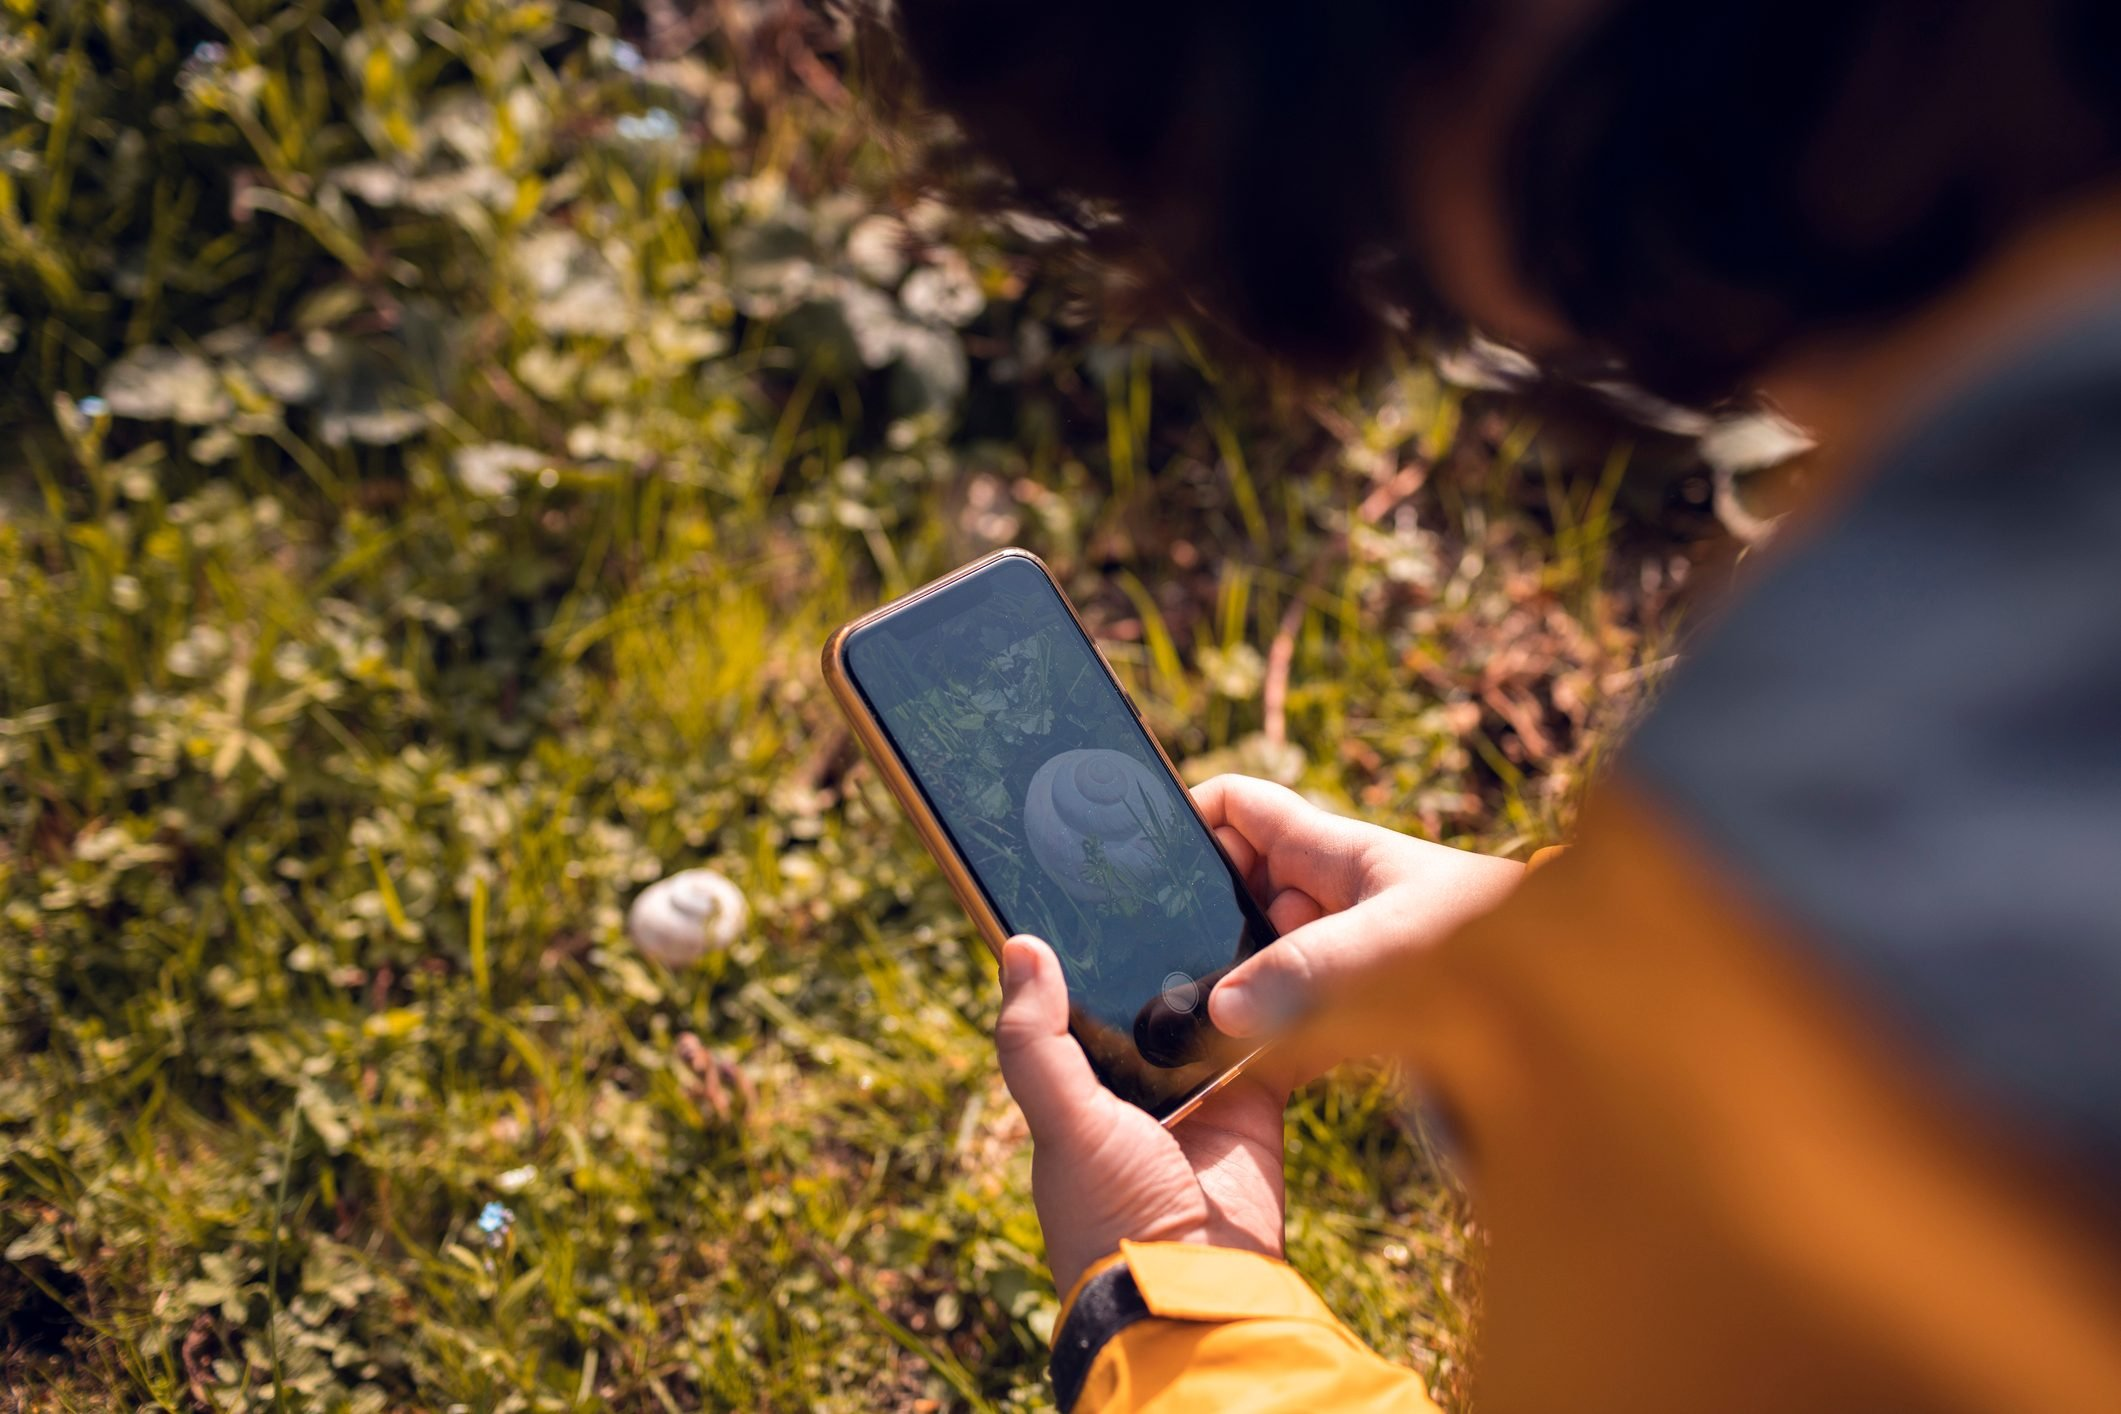 Little boy using a phone to identify plants